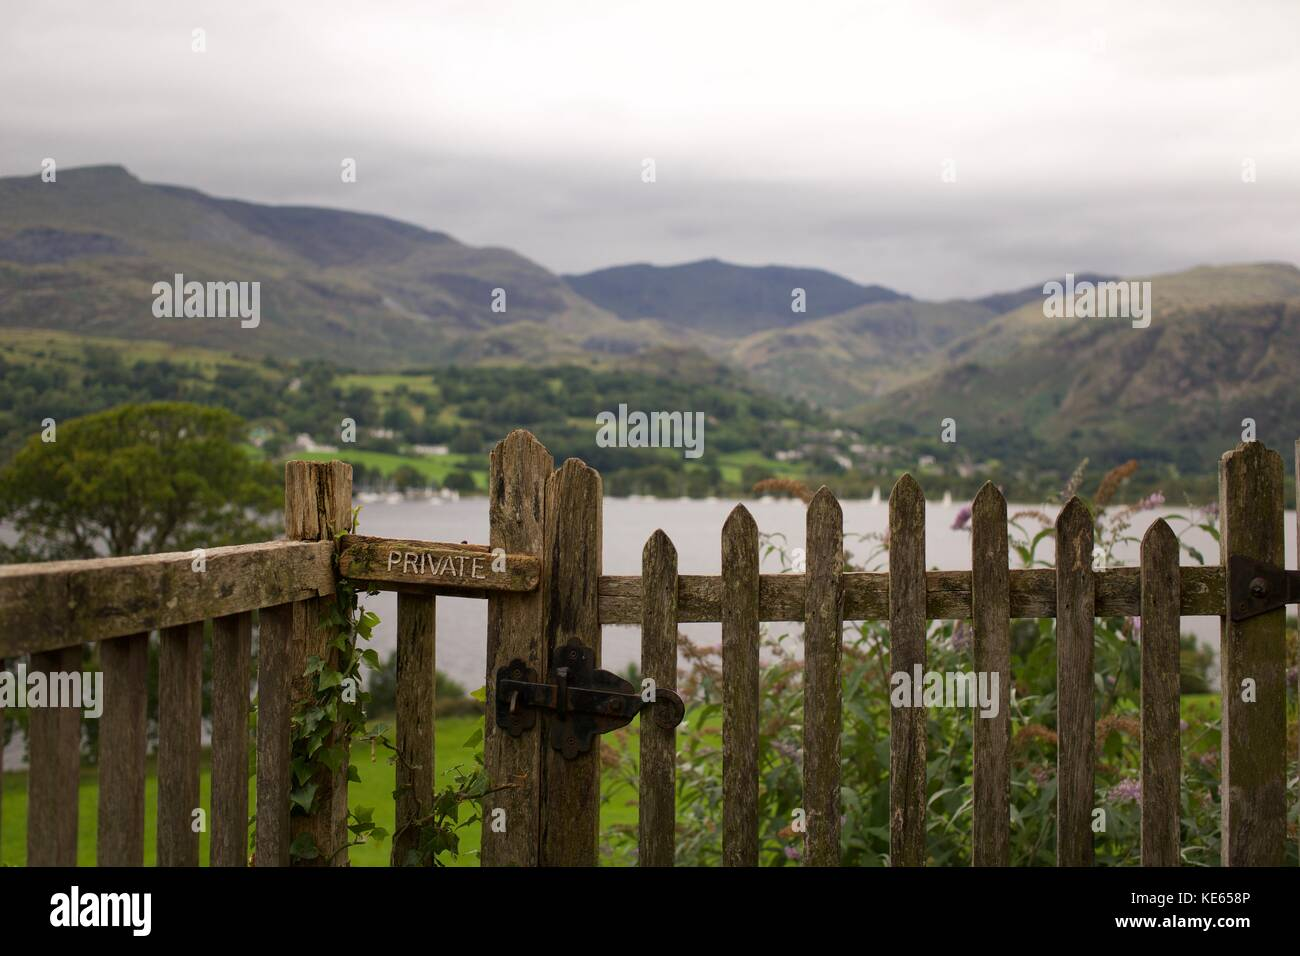 View from Brantwood - Stock Image